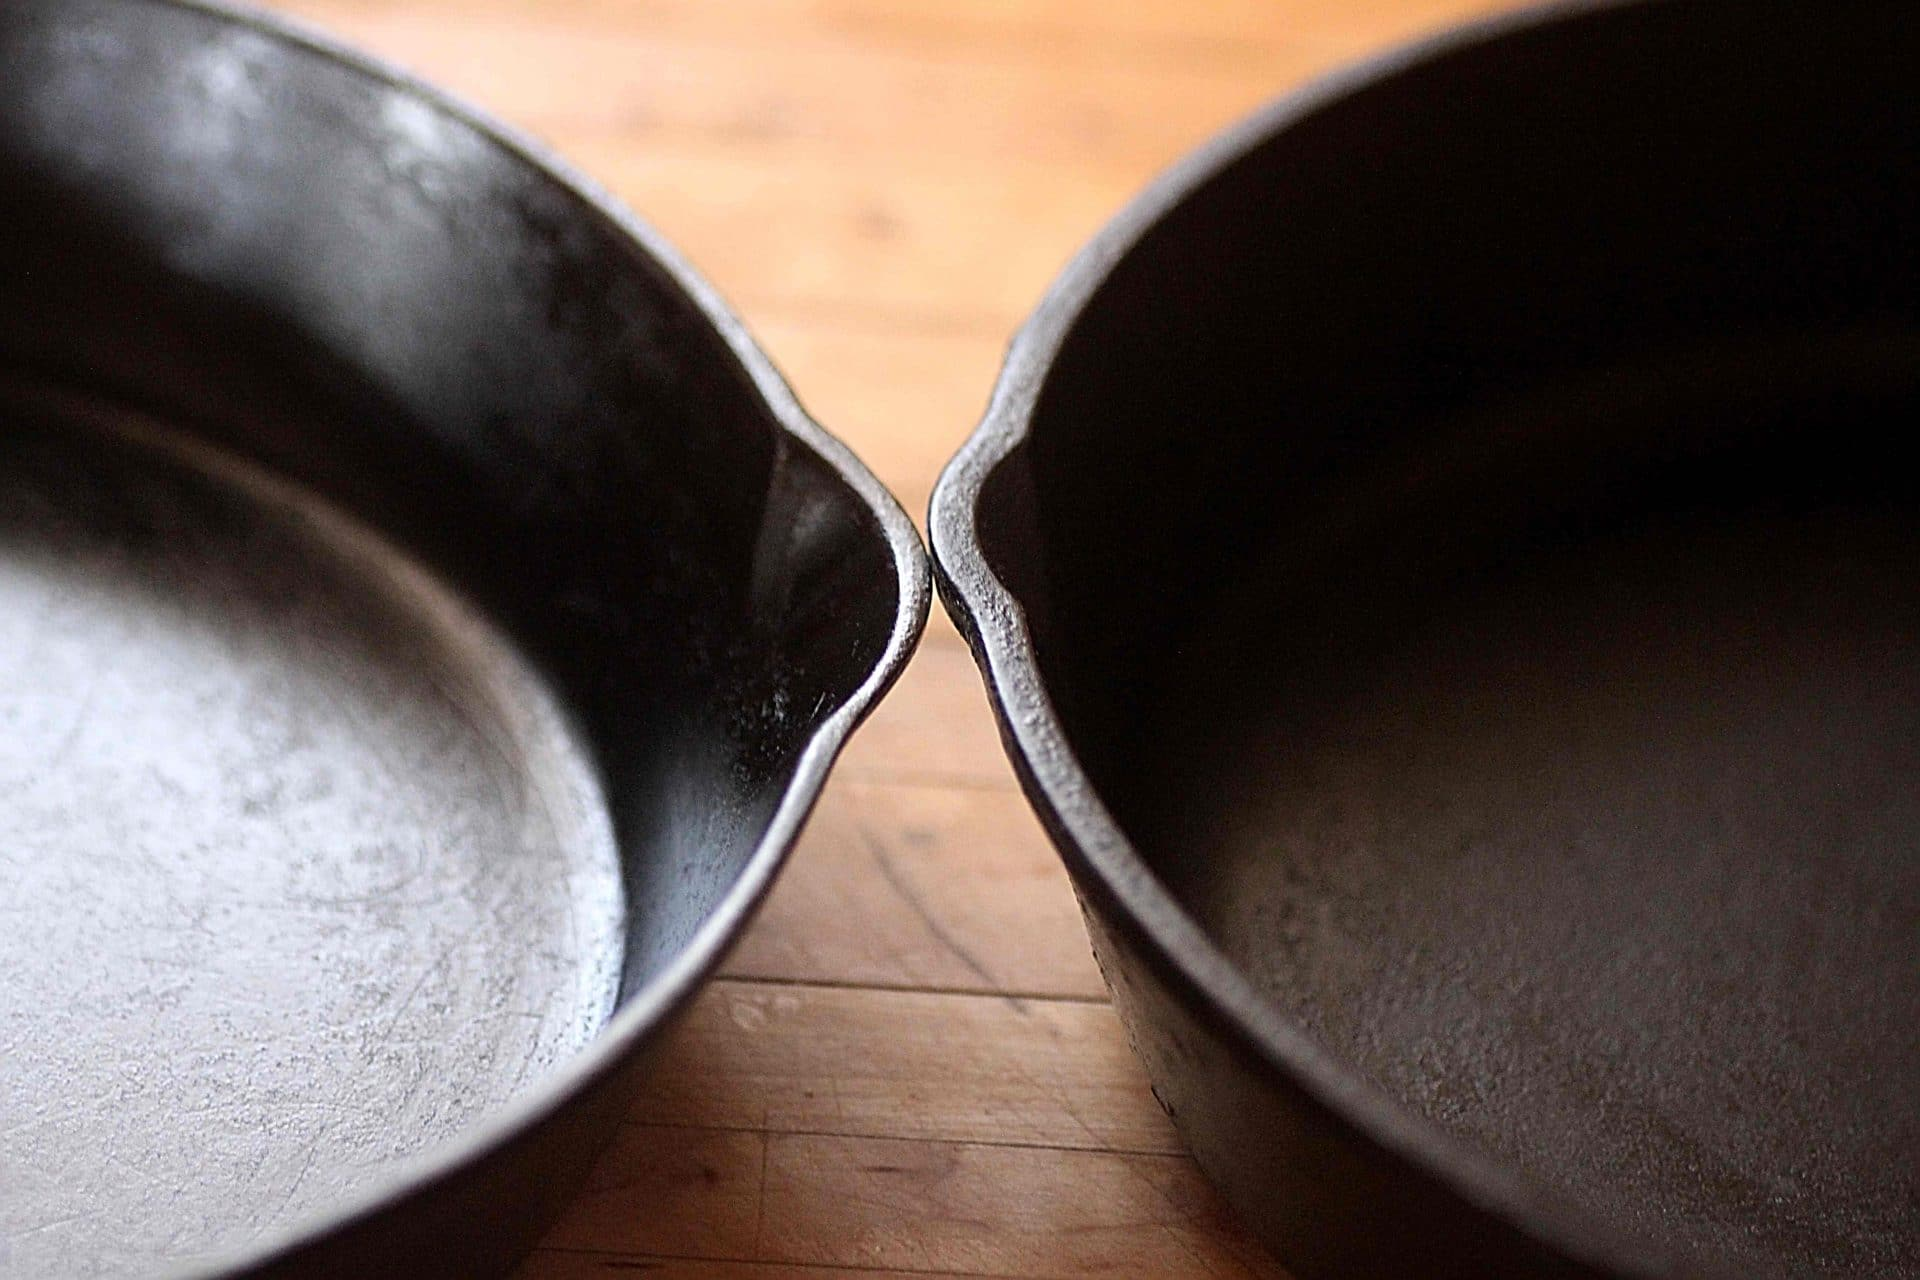 Cooking With Cast Iron Made Easy! Tips For Perfect Cast Iron Cooking